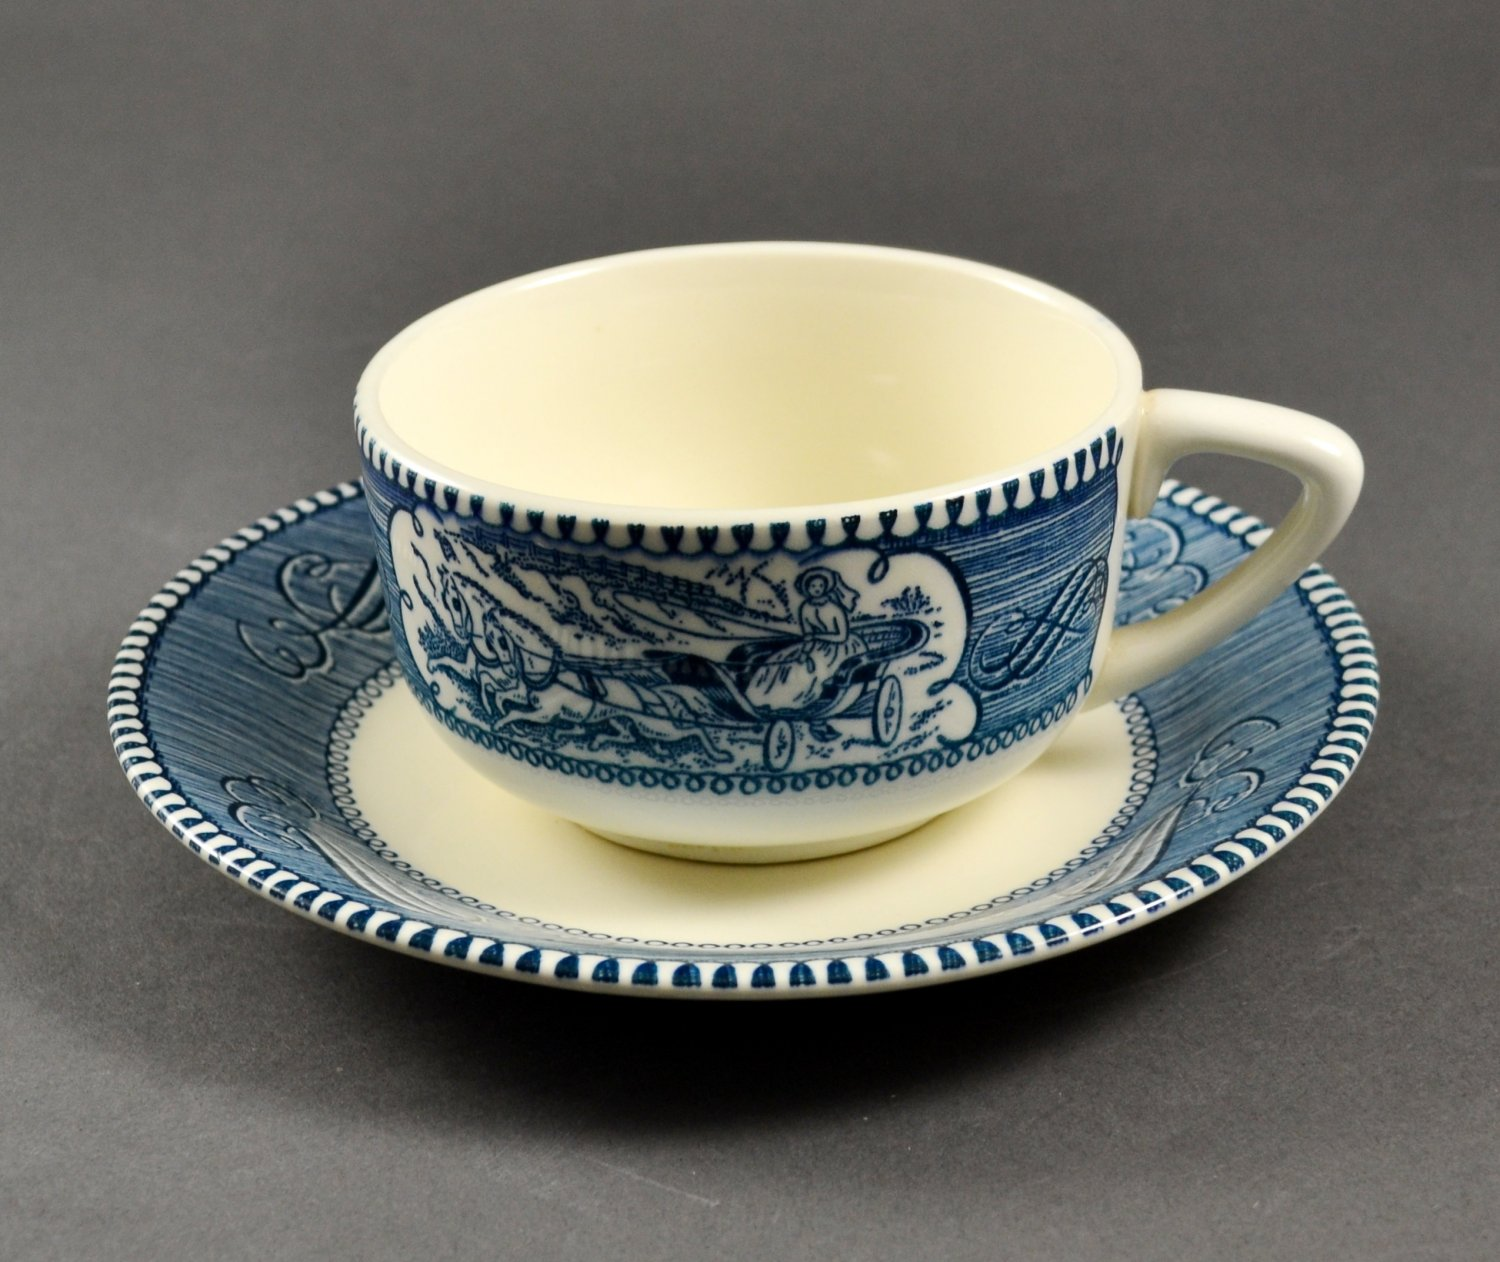 Vintage Royal China Currier & Ives Tea or Coffee Cup & Saucer